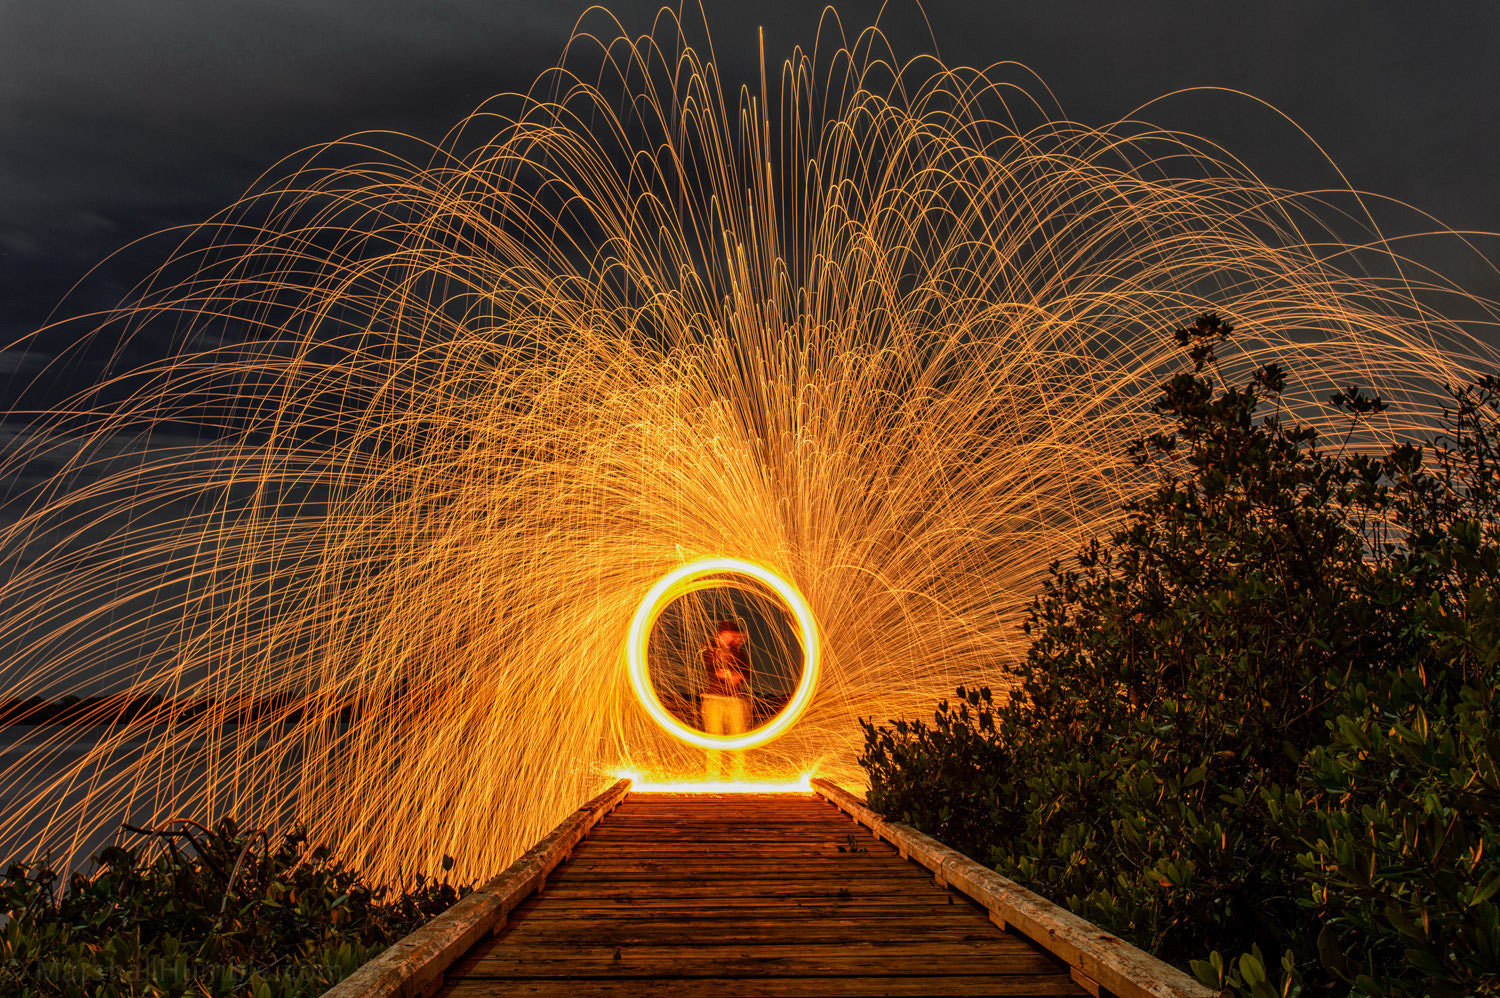 Photograph Spinning Fire by Marshall Humble on 500px